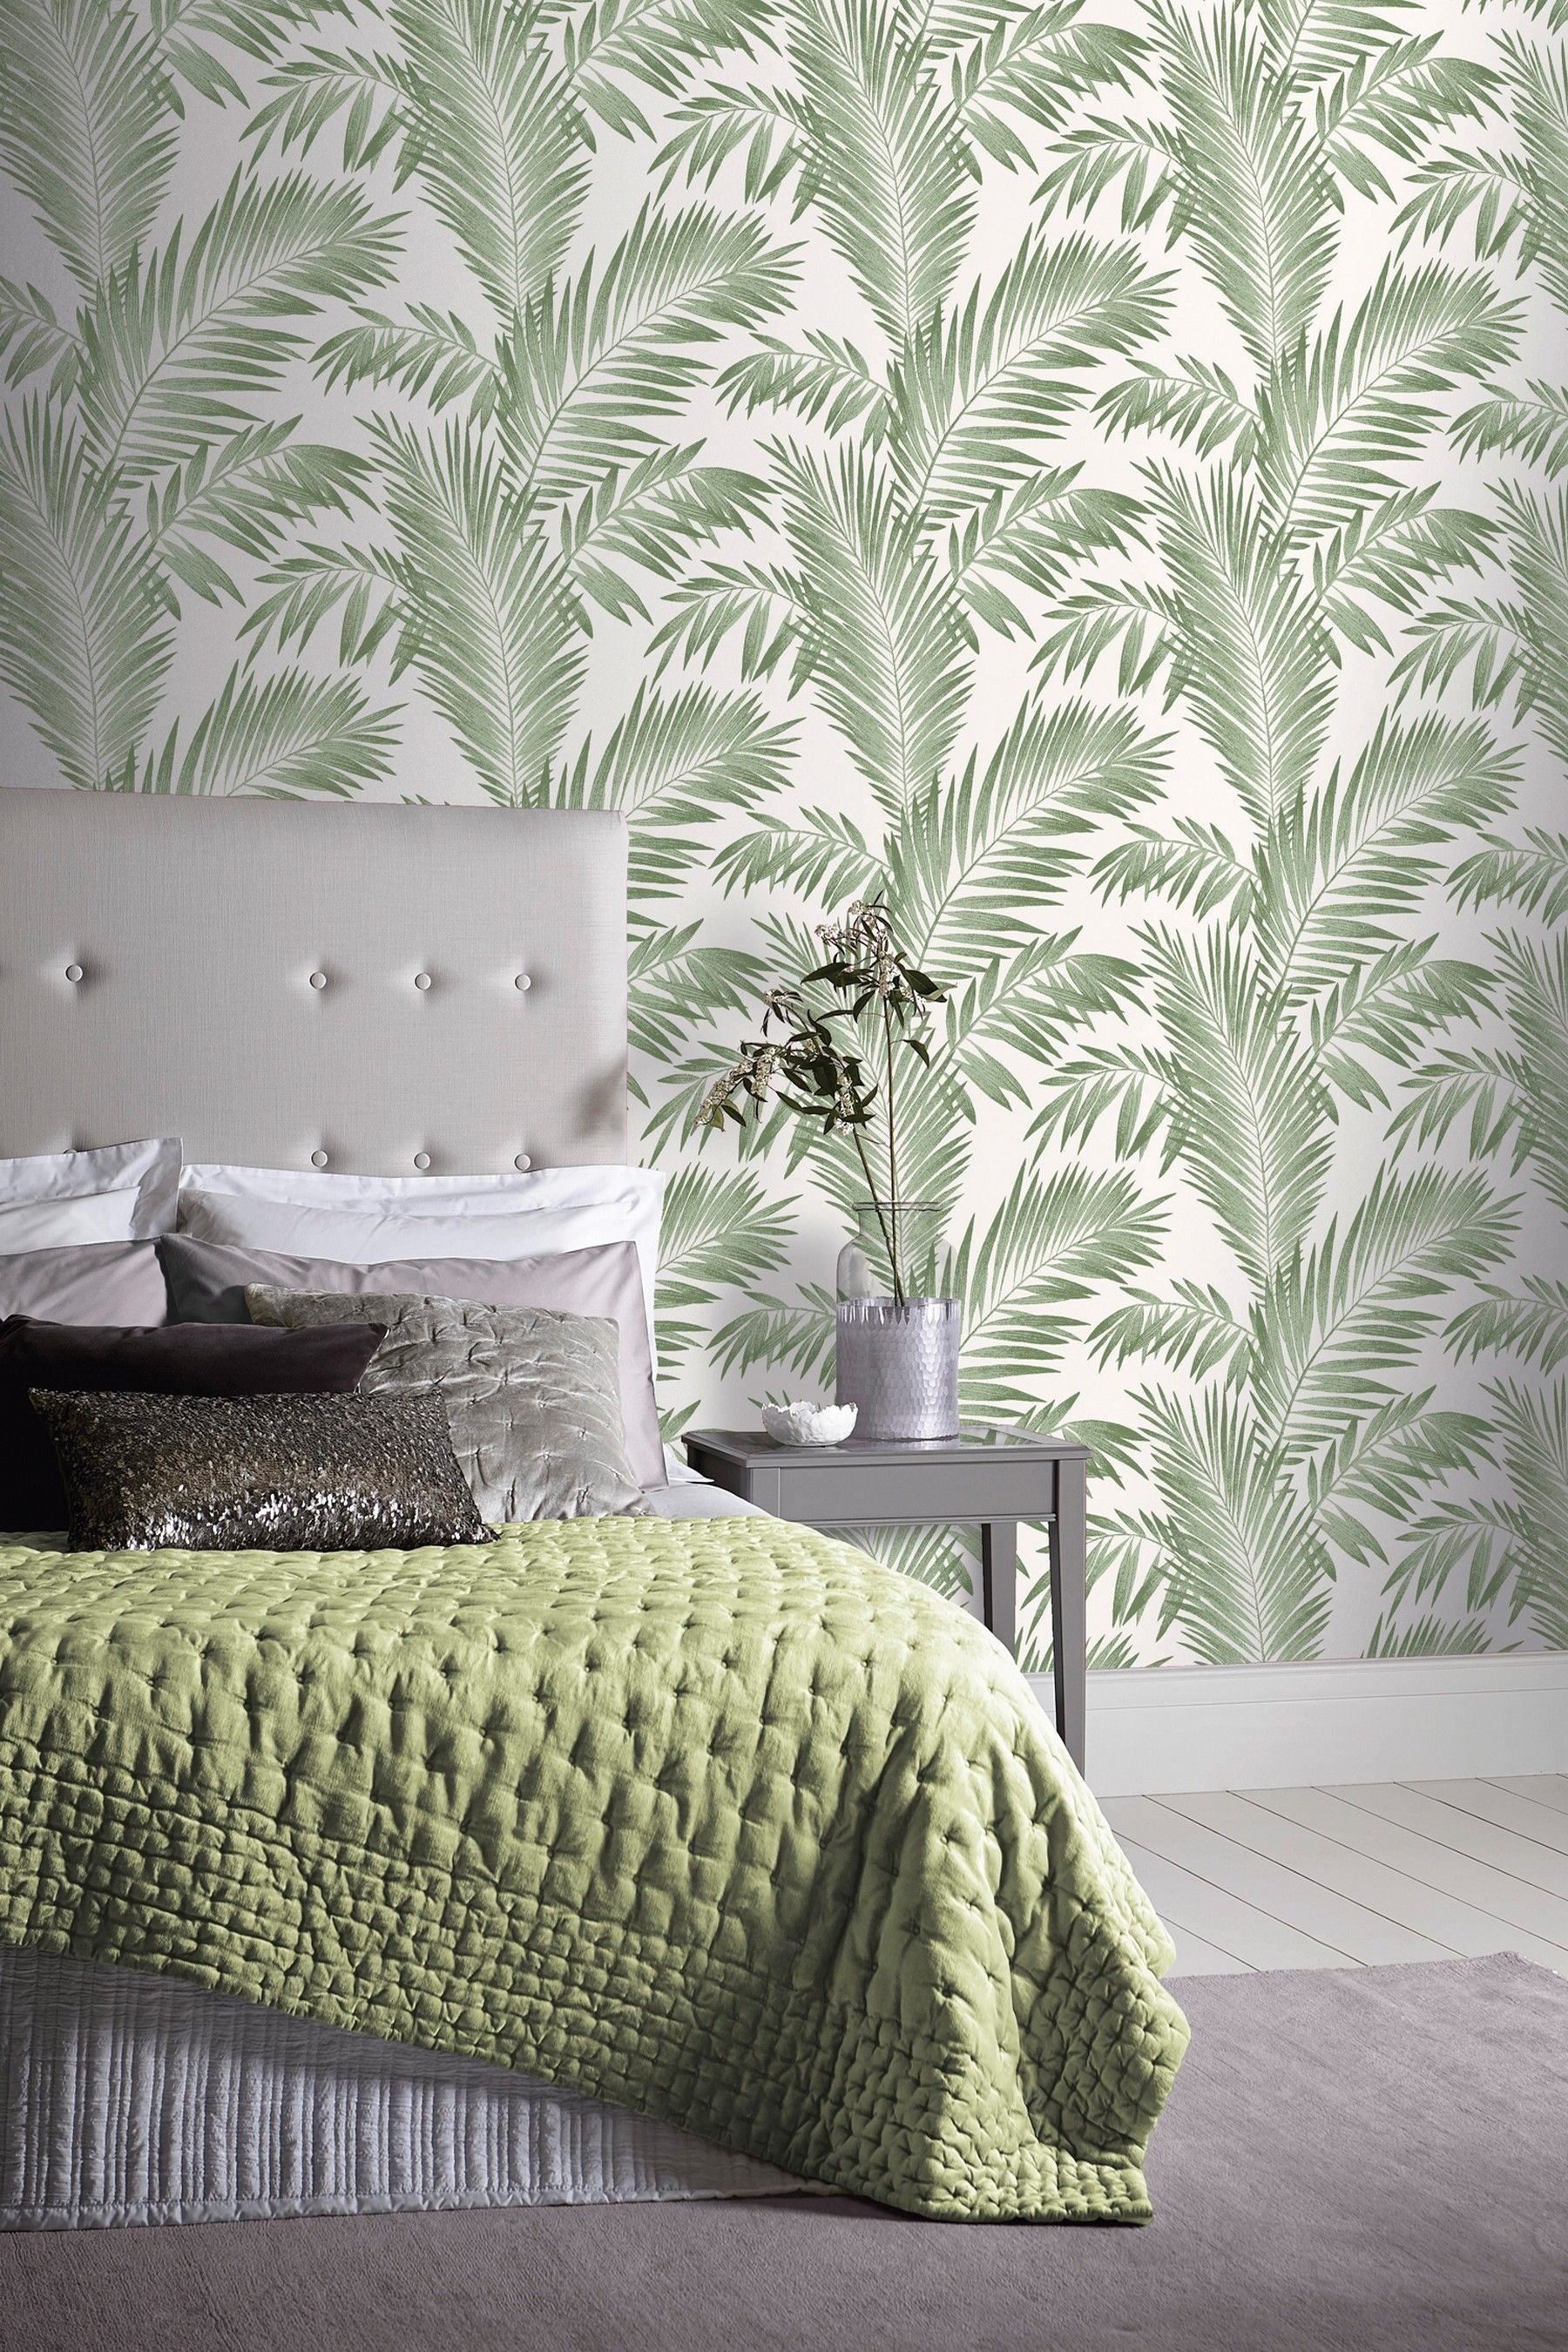 Buy Tropical Palm Leaves Wallpaper by Arthouse from the